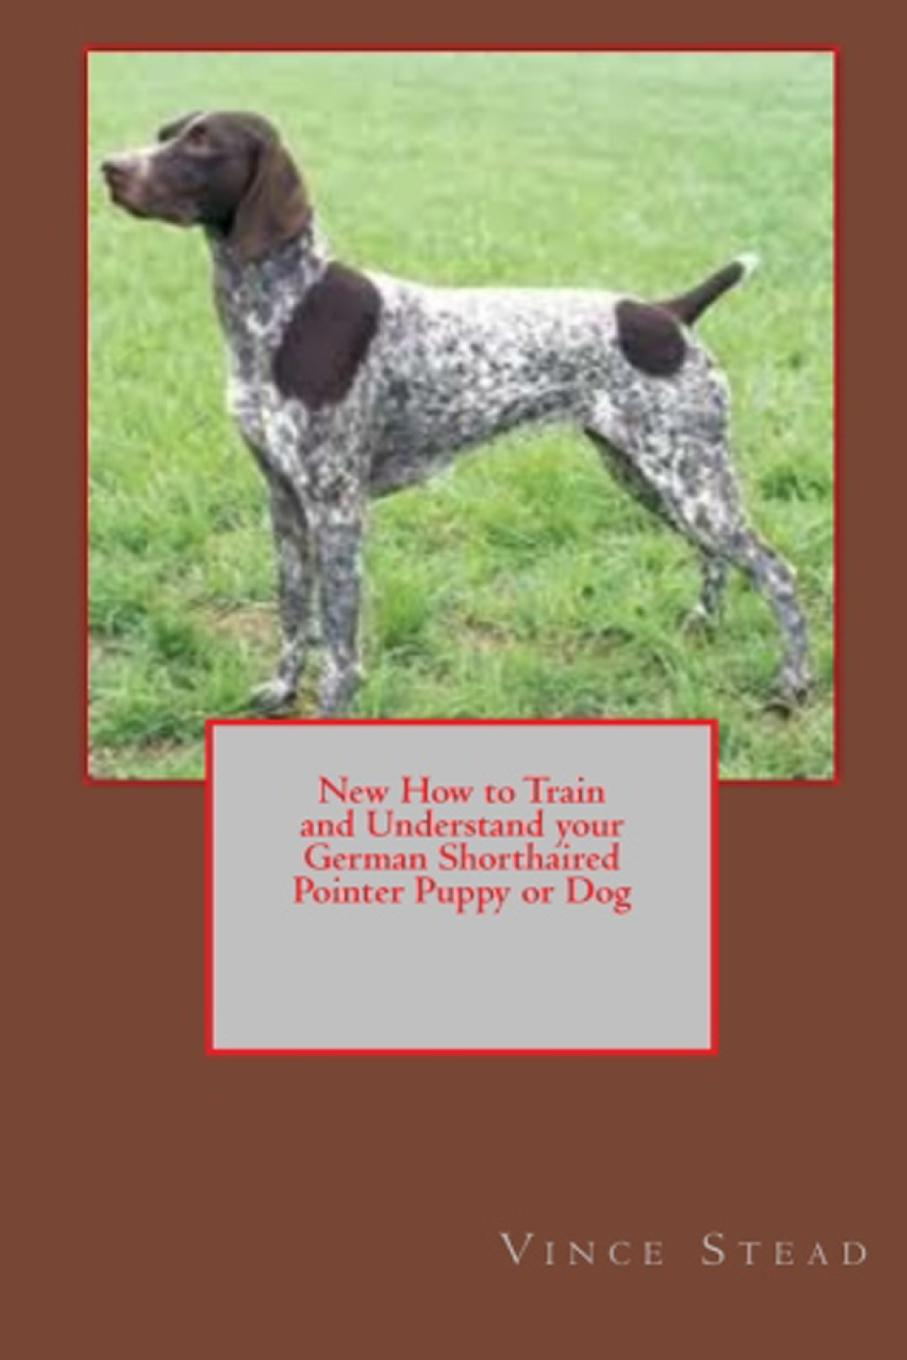 Vince Stead New How to Train and Understand your German Shorthaired Pointer Puppy or Dog цены онлайн